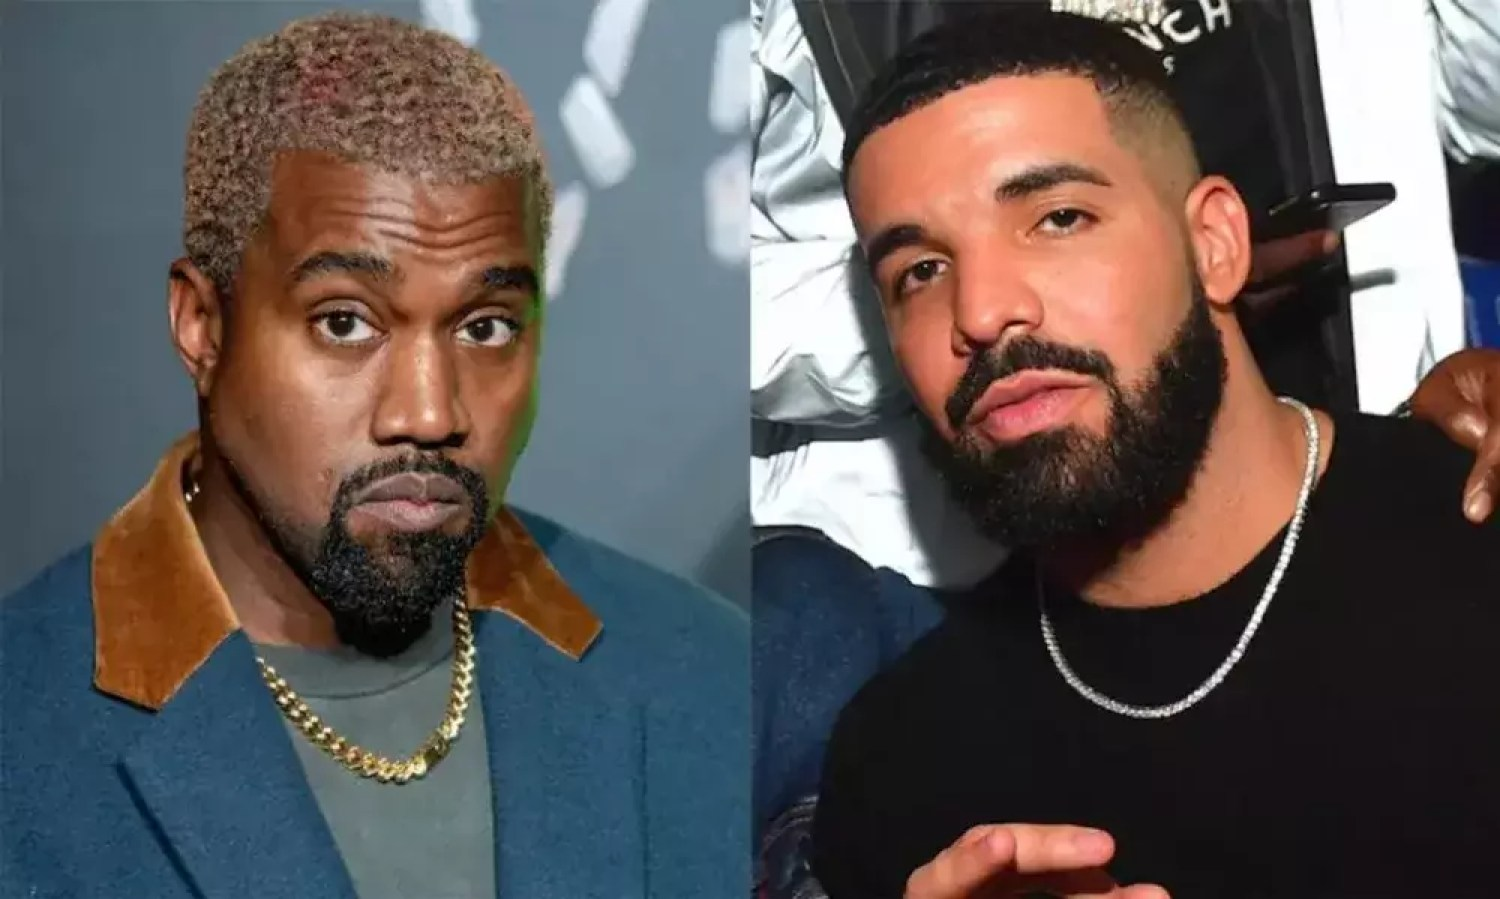 Entertainment News: Kanye West And Drake Allegedly Squash Their Beef